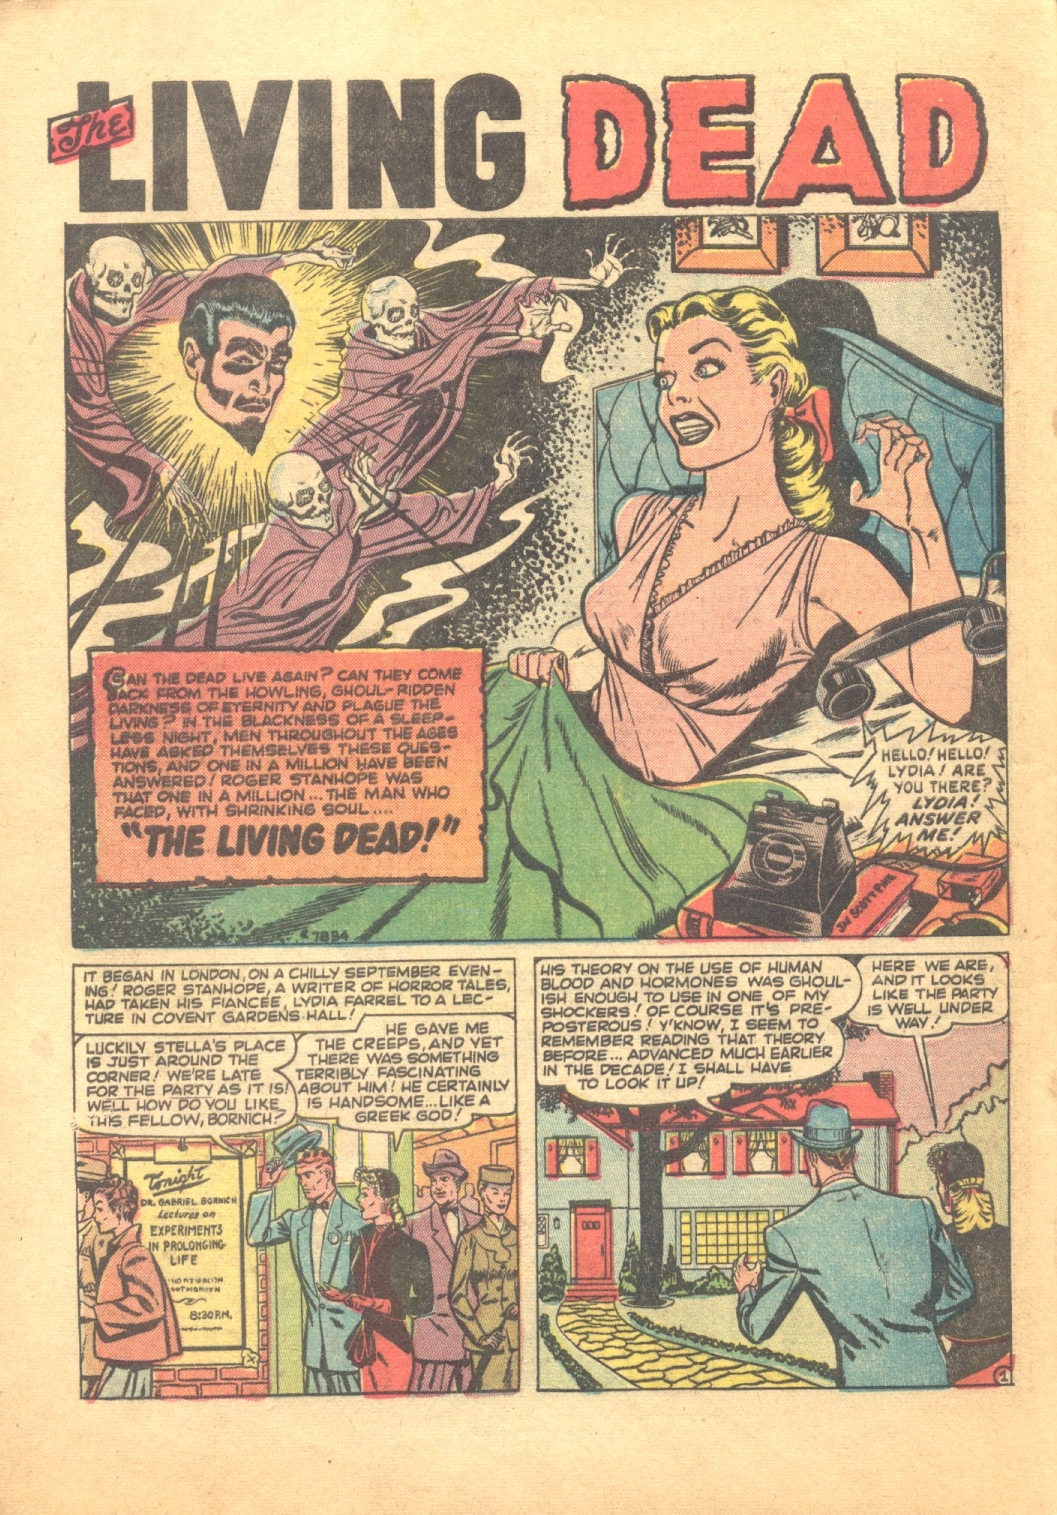 """Adventures Into Terror (1951) #3, interior story """"The Living Dead"""" - penciled & inked by Jay Scott Pike."""